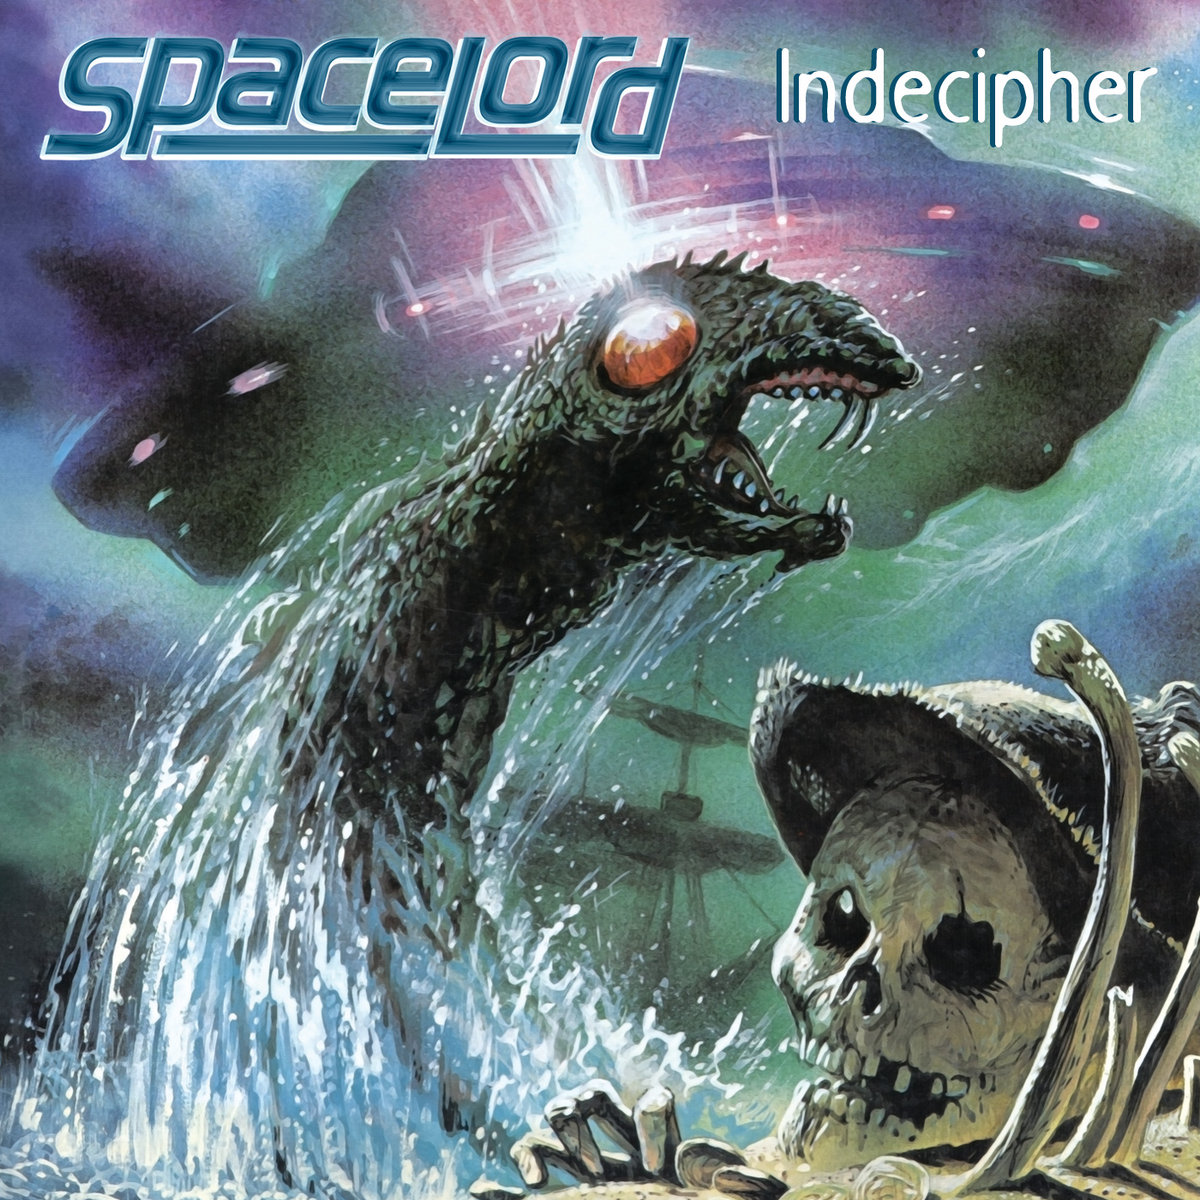 Spacelord Indecipher